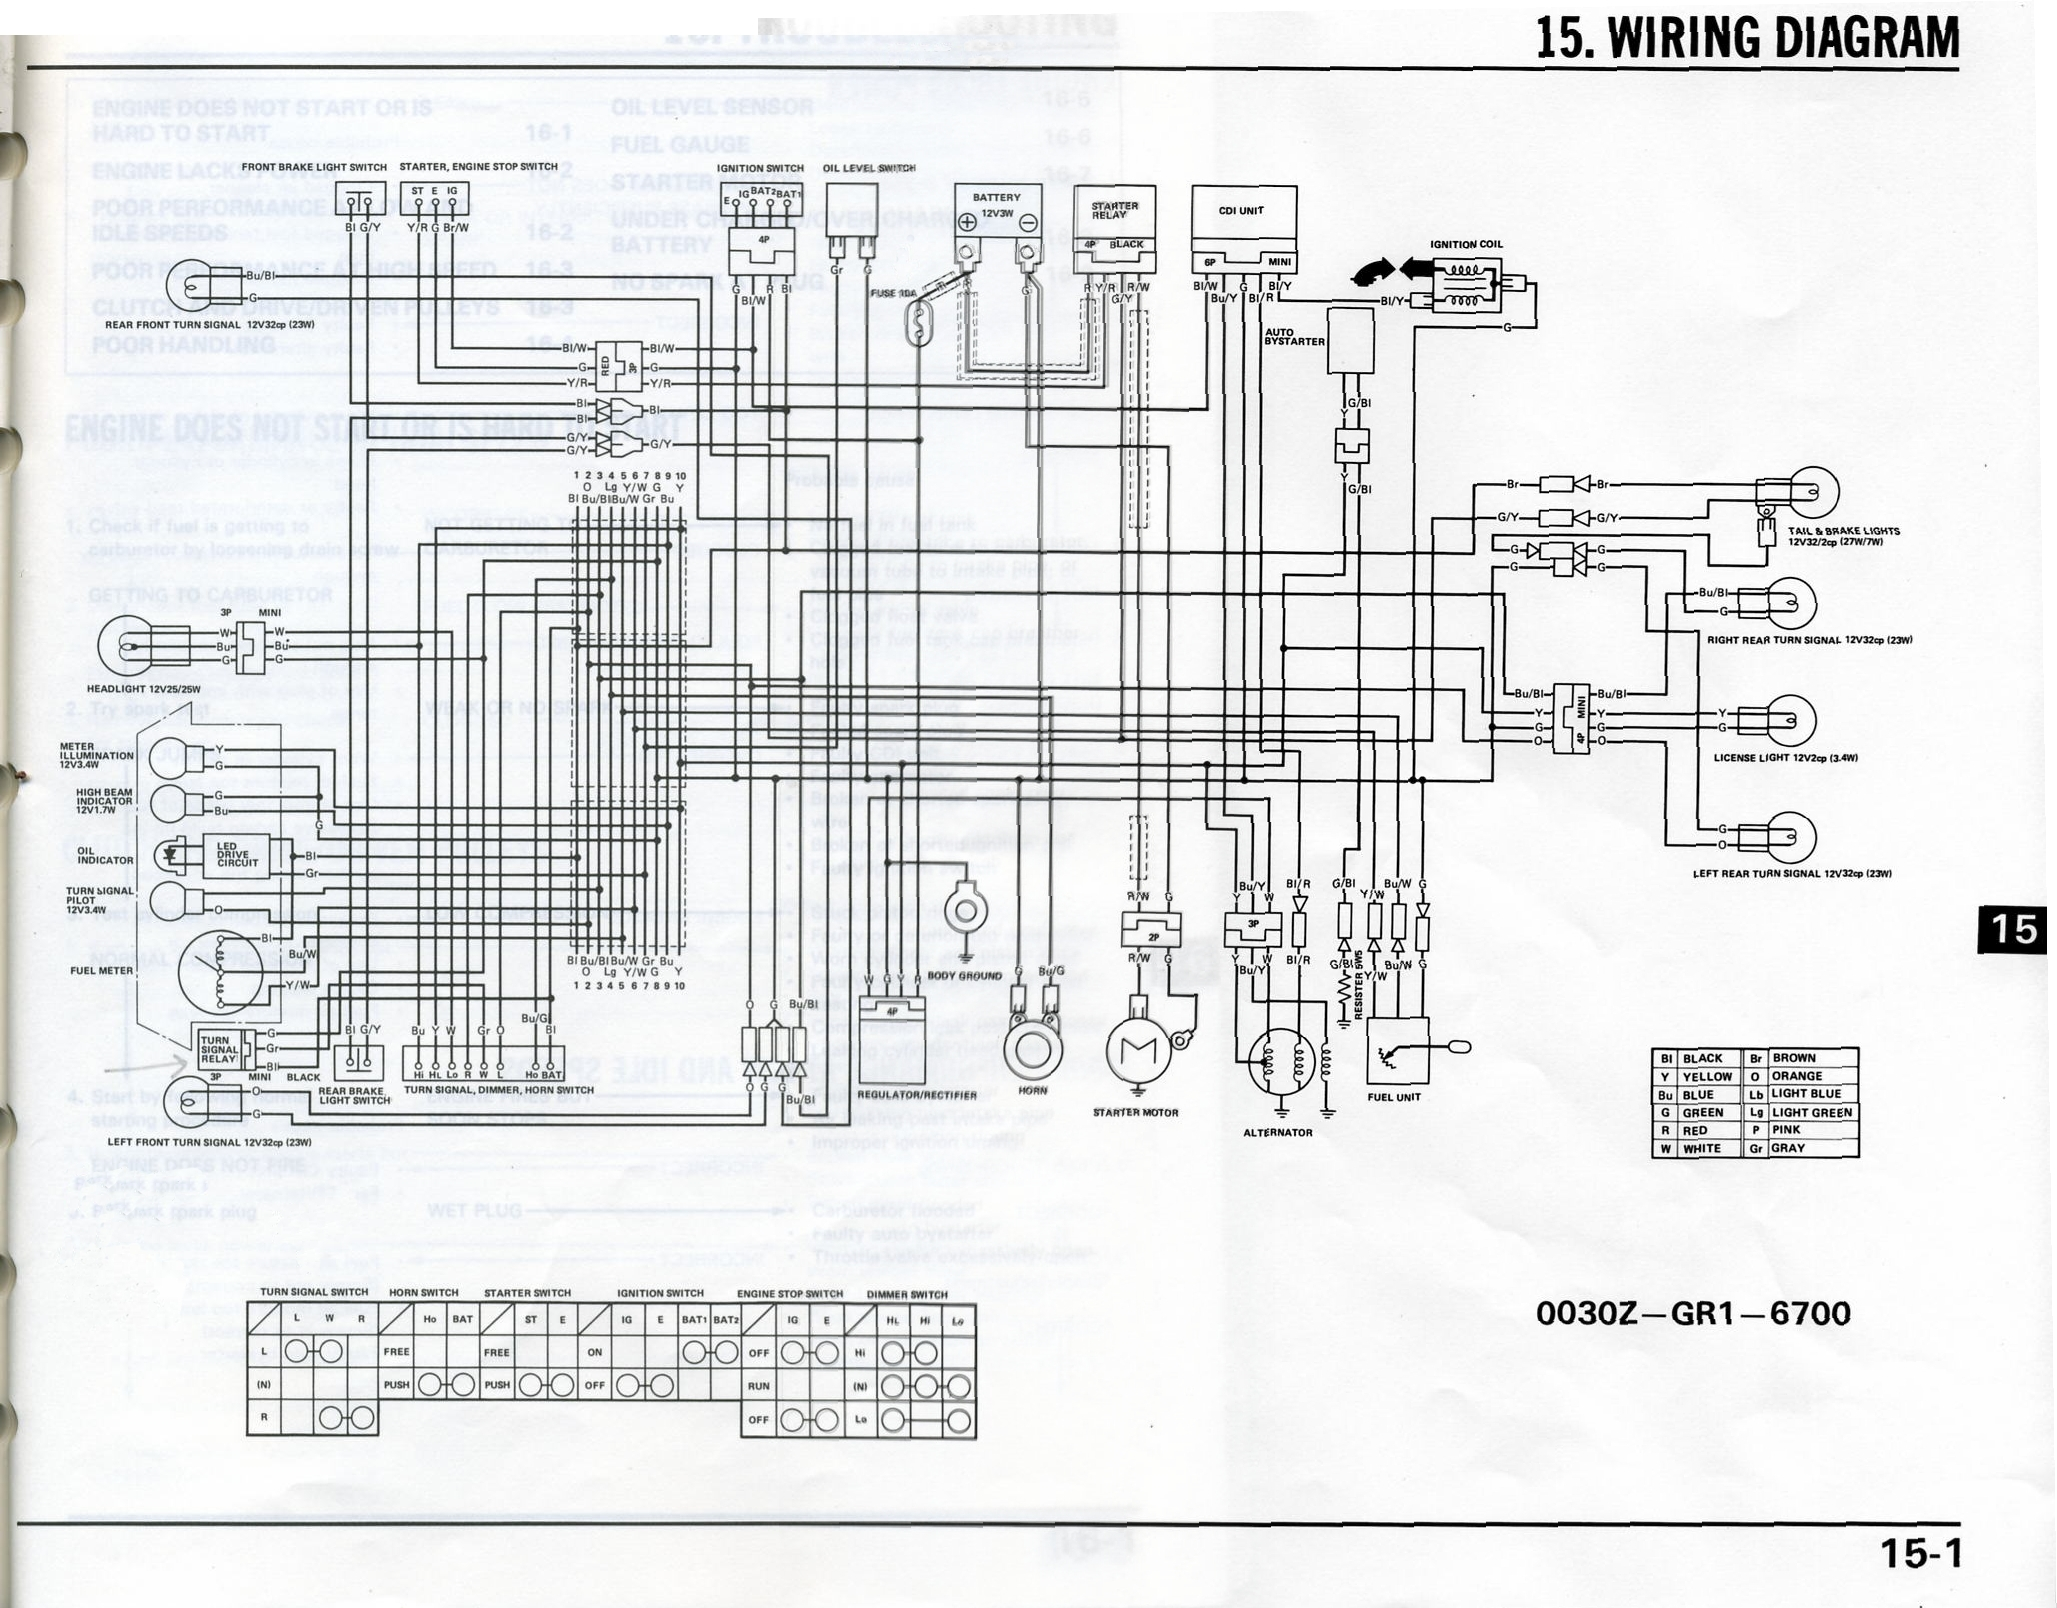 2007 civic si wiring diagram